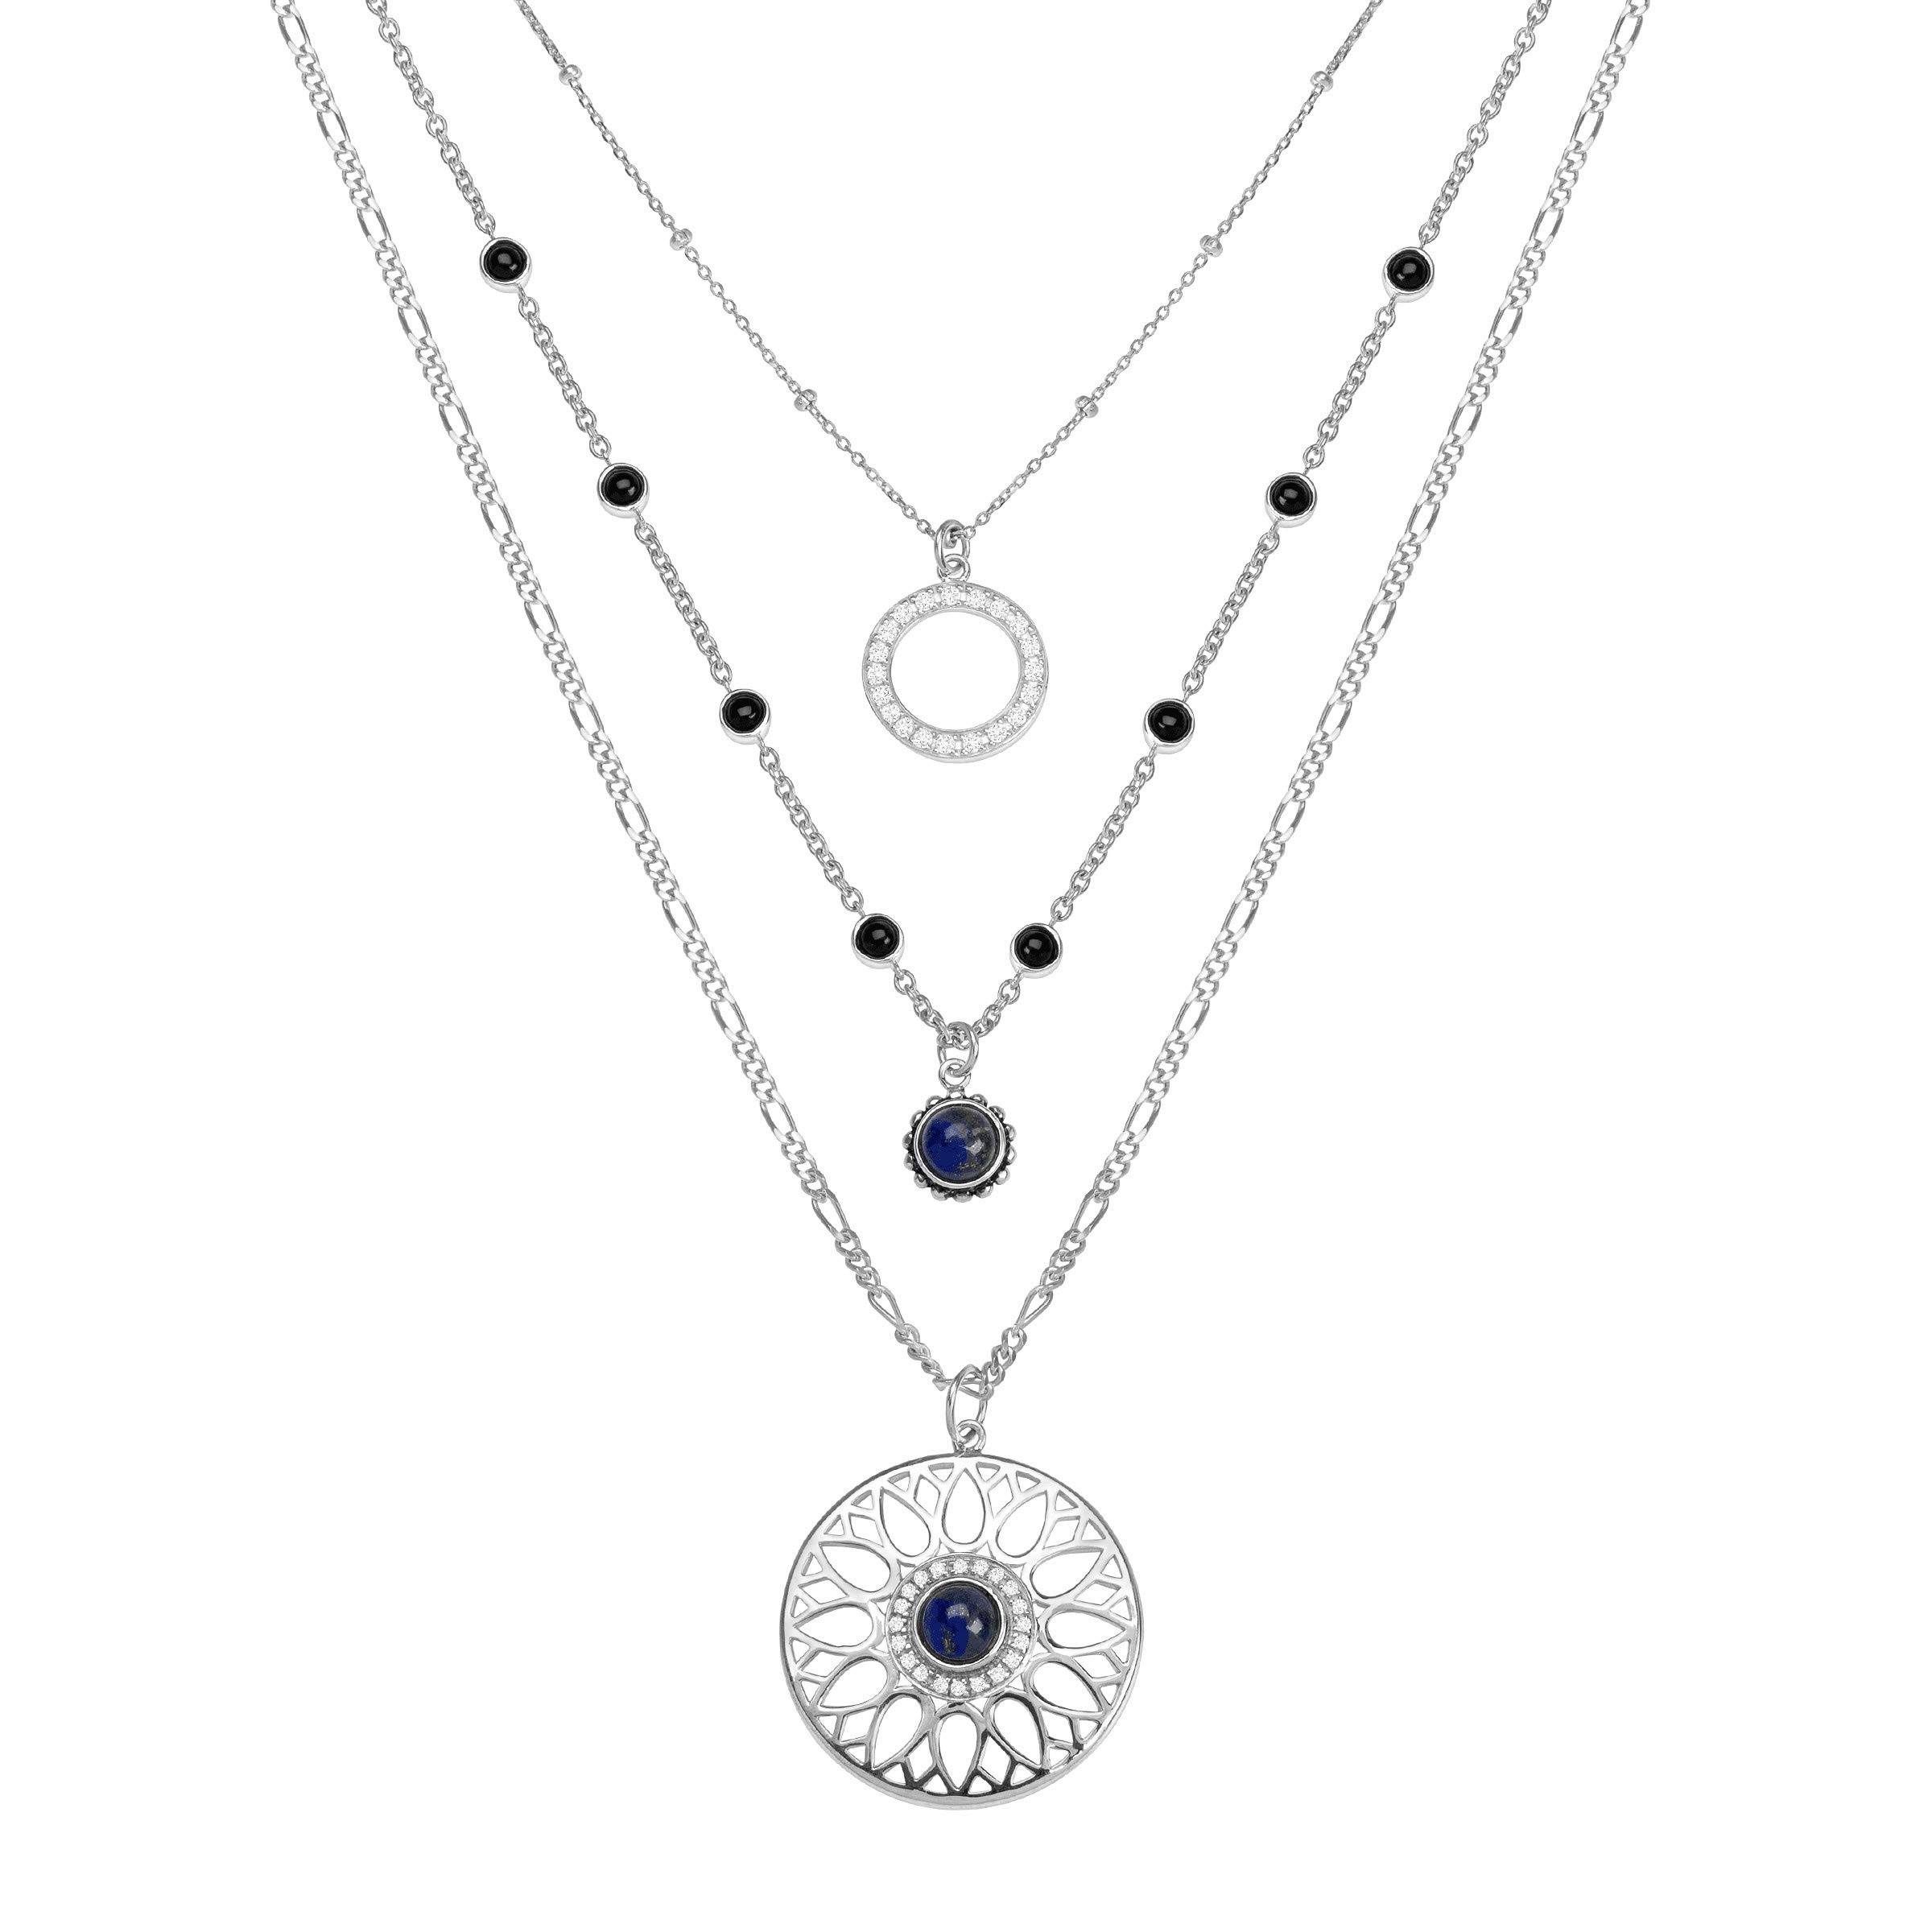 Silpada 'Moonflower' 3 1/5 ct Natural Black Agate, Lapis, CZ Layered Necklace in Sterling Silver